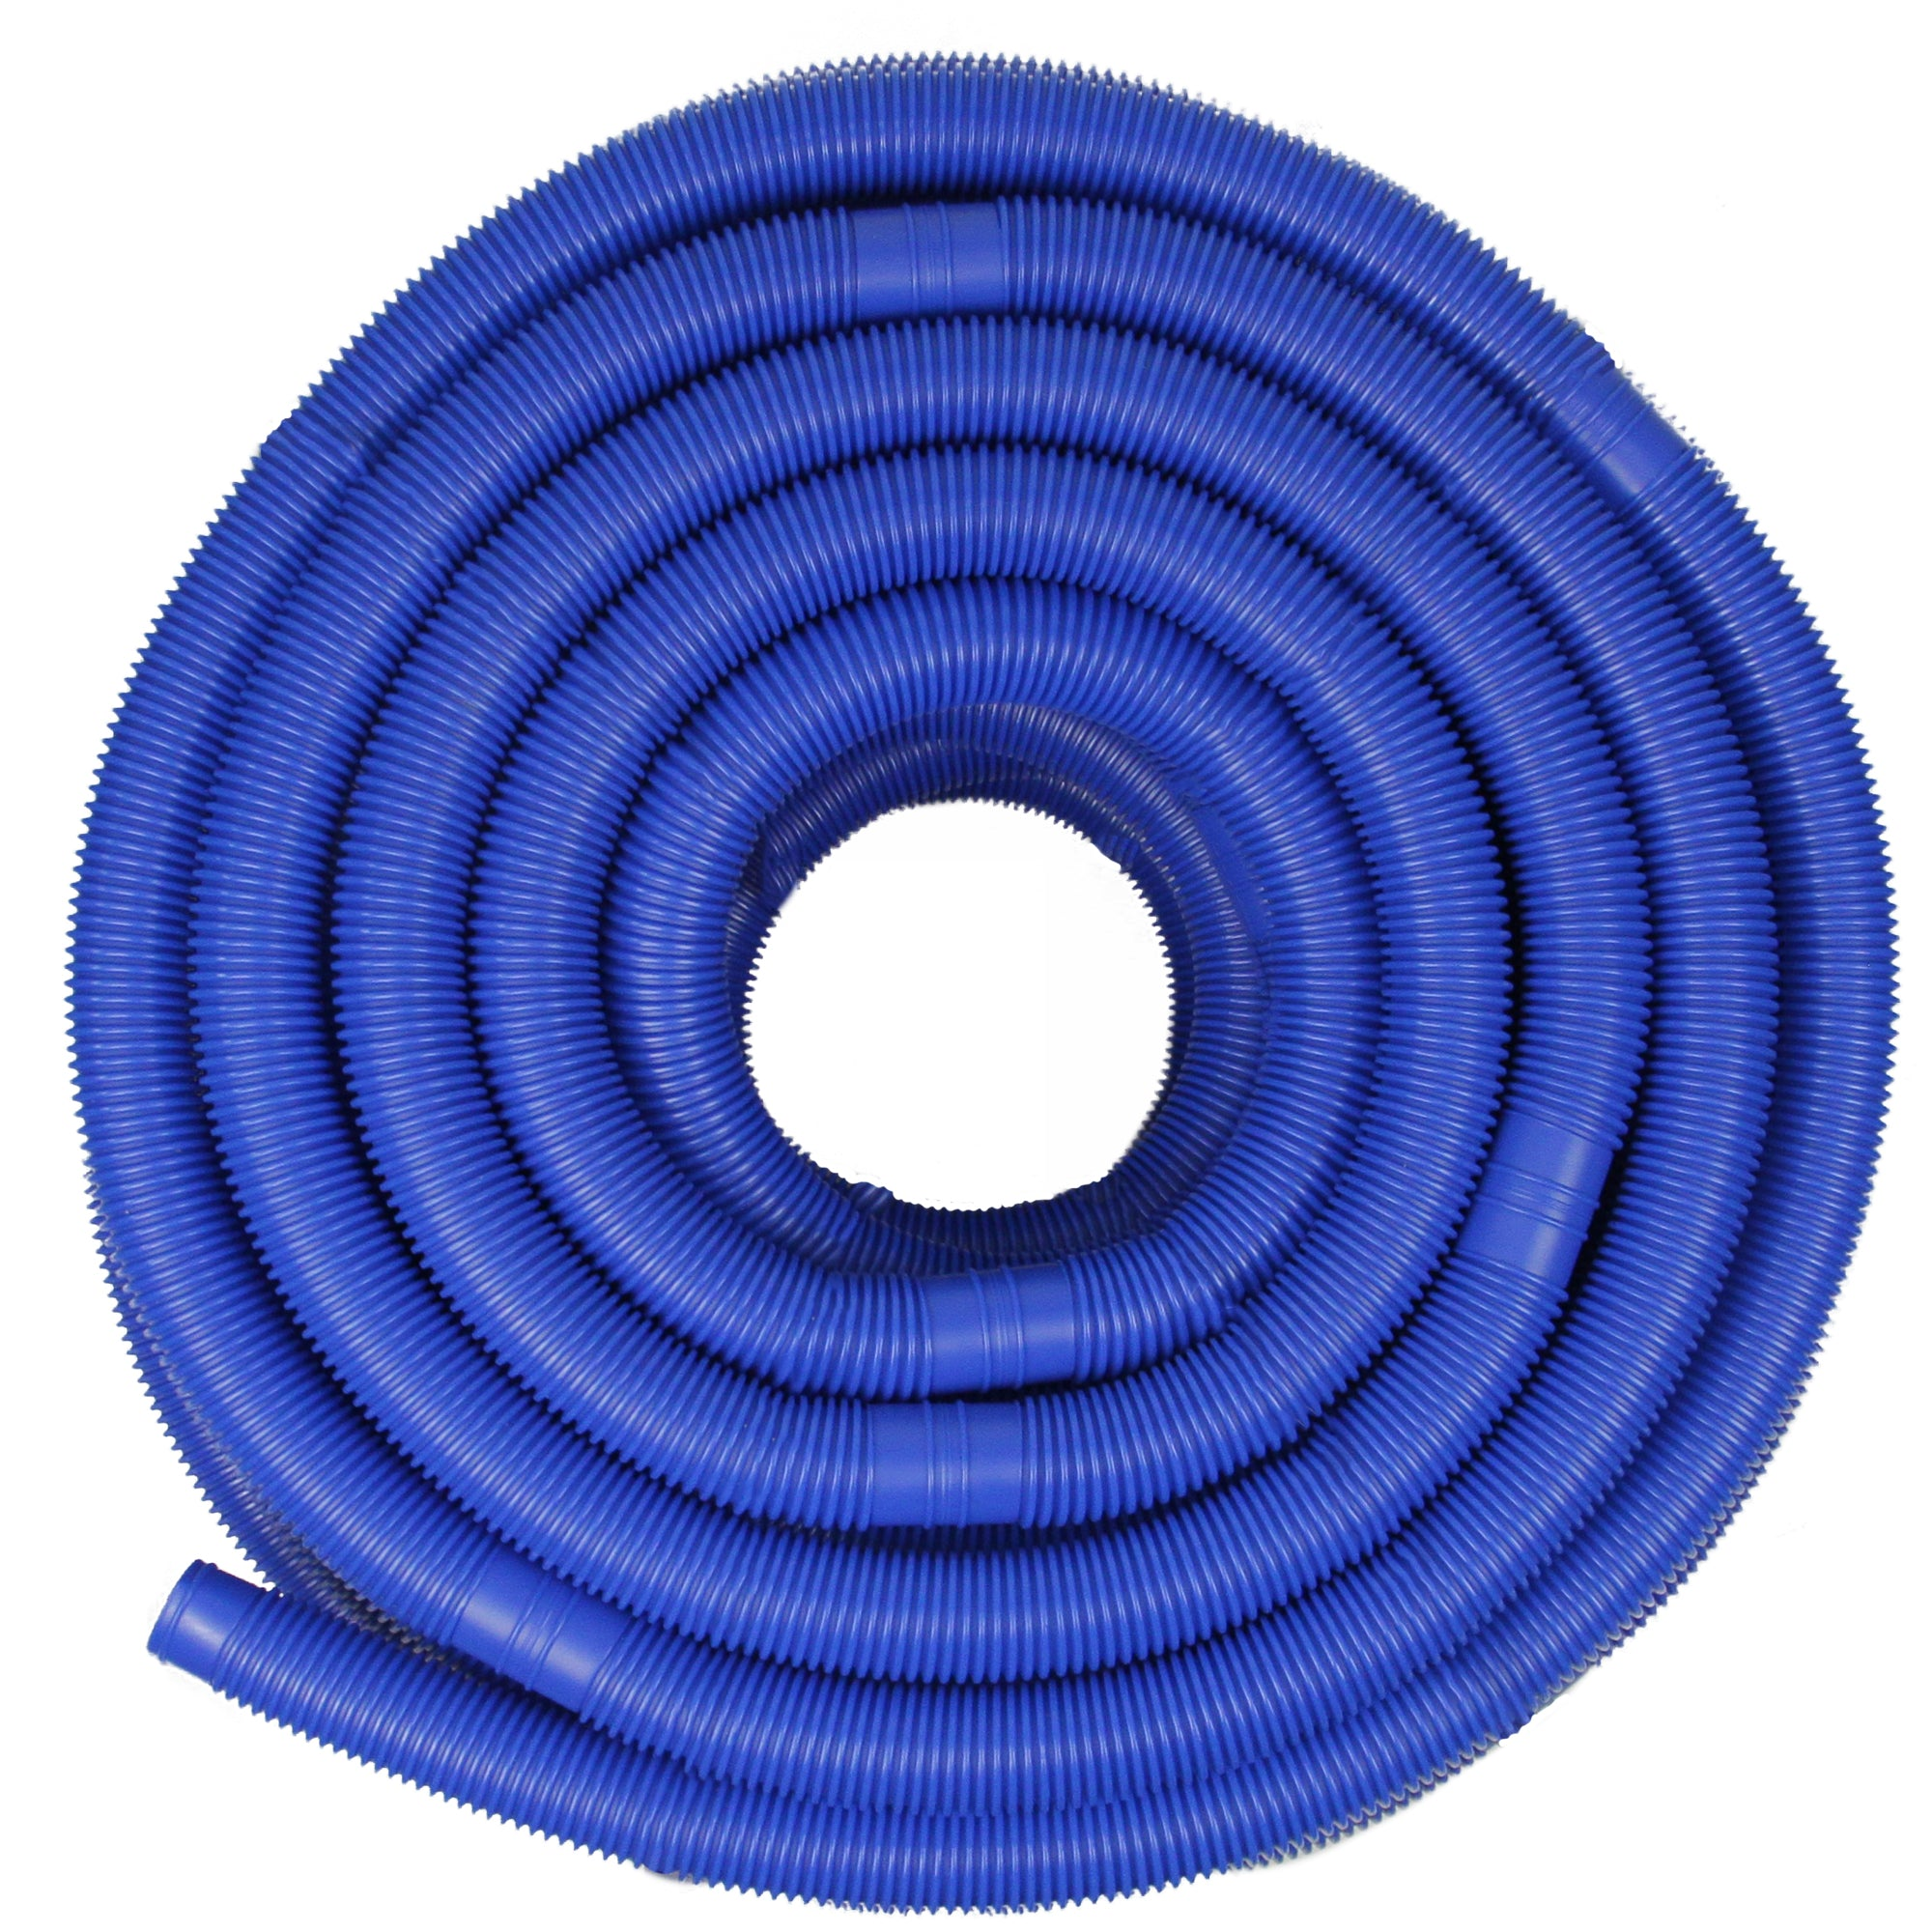 Blue Blow-Molded PE In-Ground Swimming Pool Cuttable Vacuum Hose ...